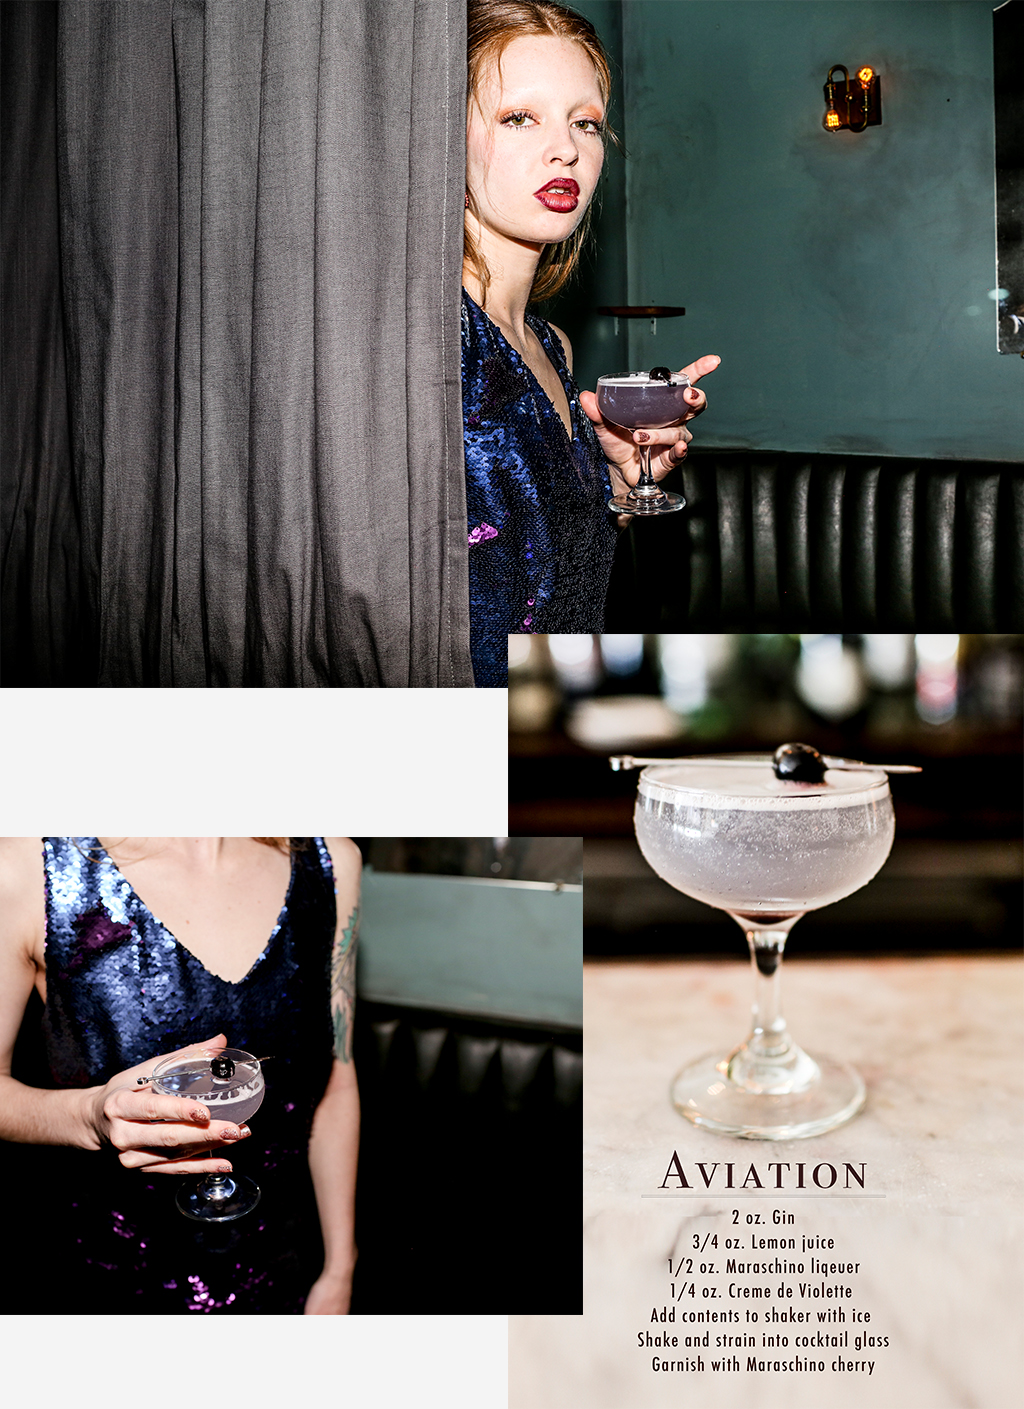 aviation-collage